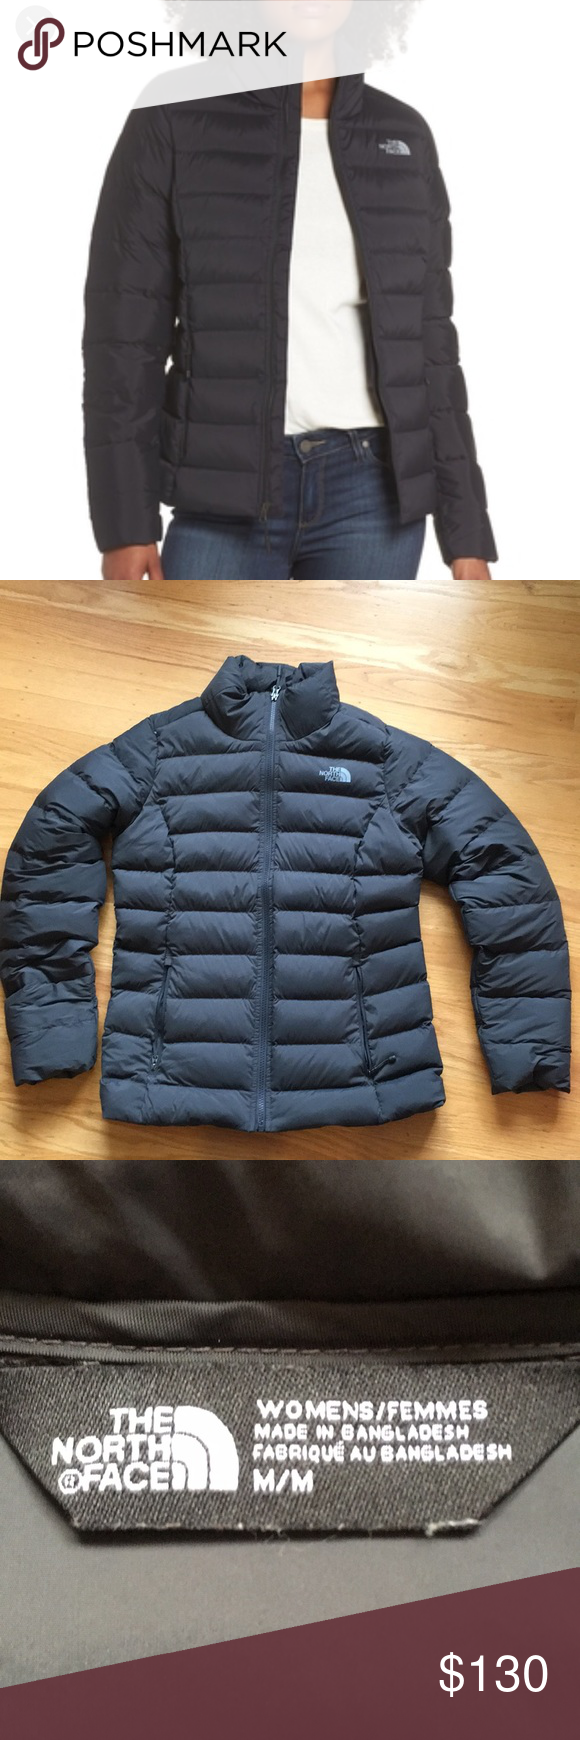 Nwot North Face Stretch Down Jacket Down Jacket North Face Jacket Clothes Design [ 1740 x 580 Pixel ]